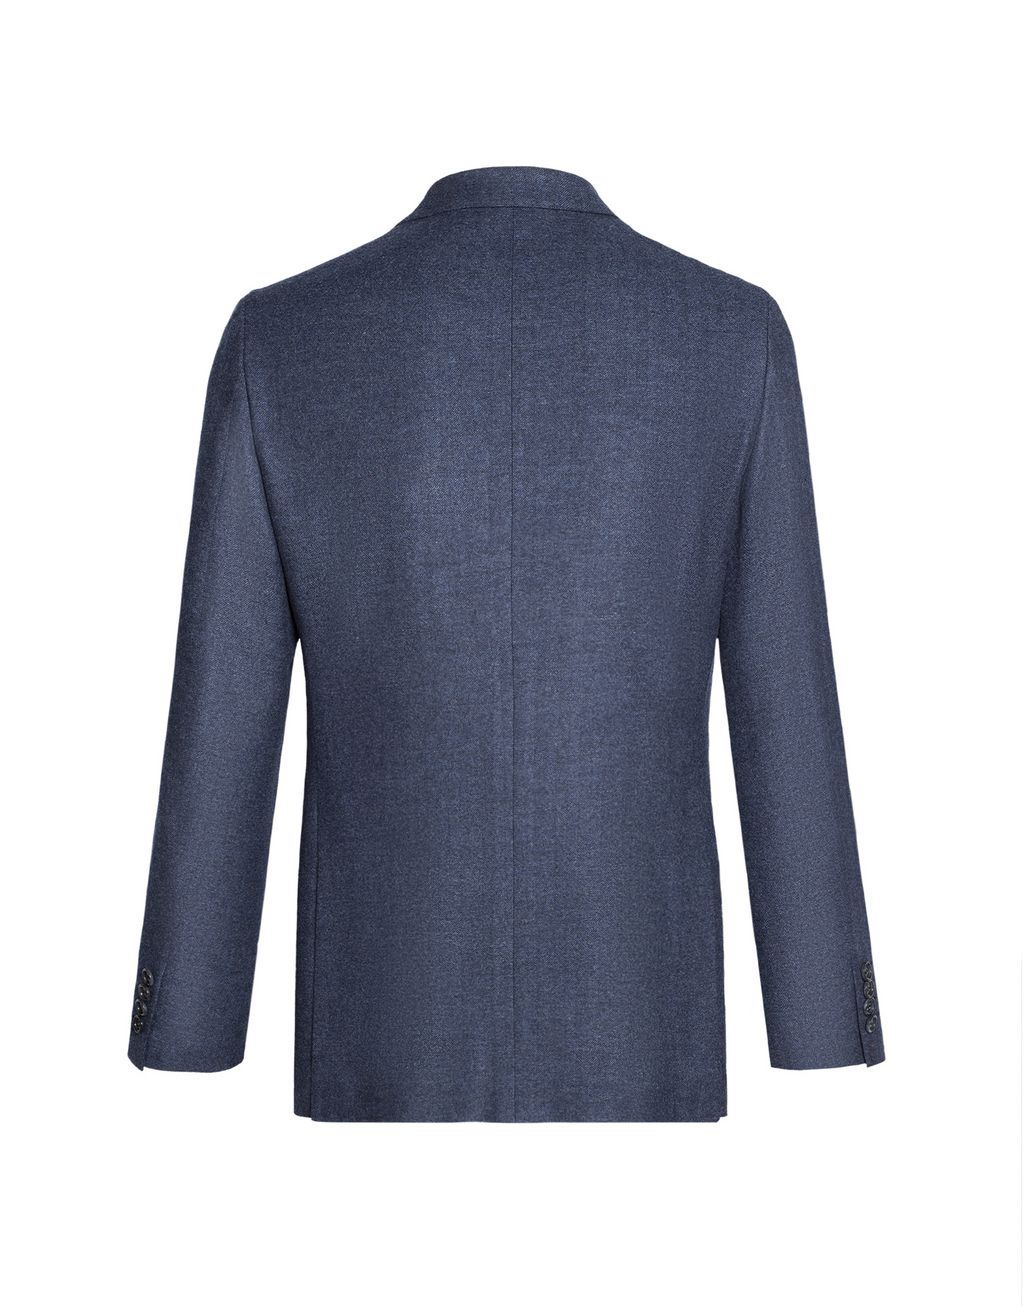 BRIONI Denim Blue Herringbone Plume Jacket Jackets Man r